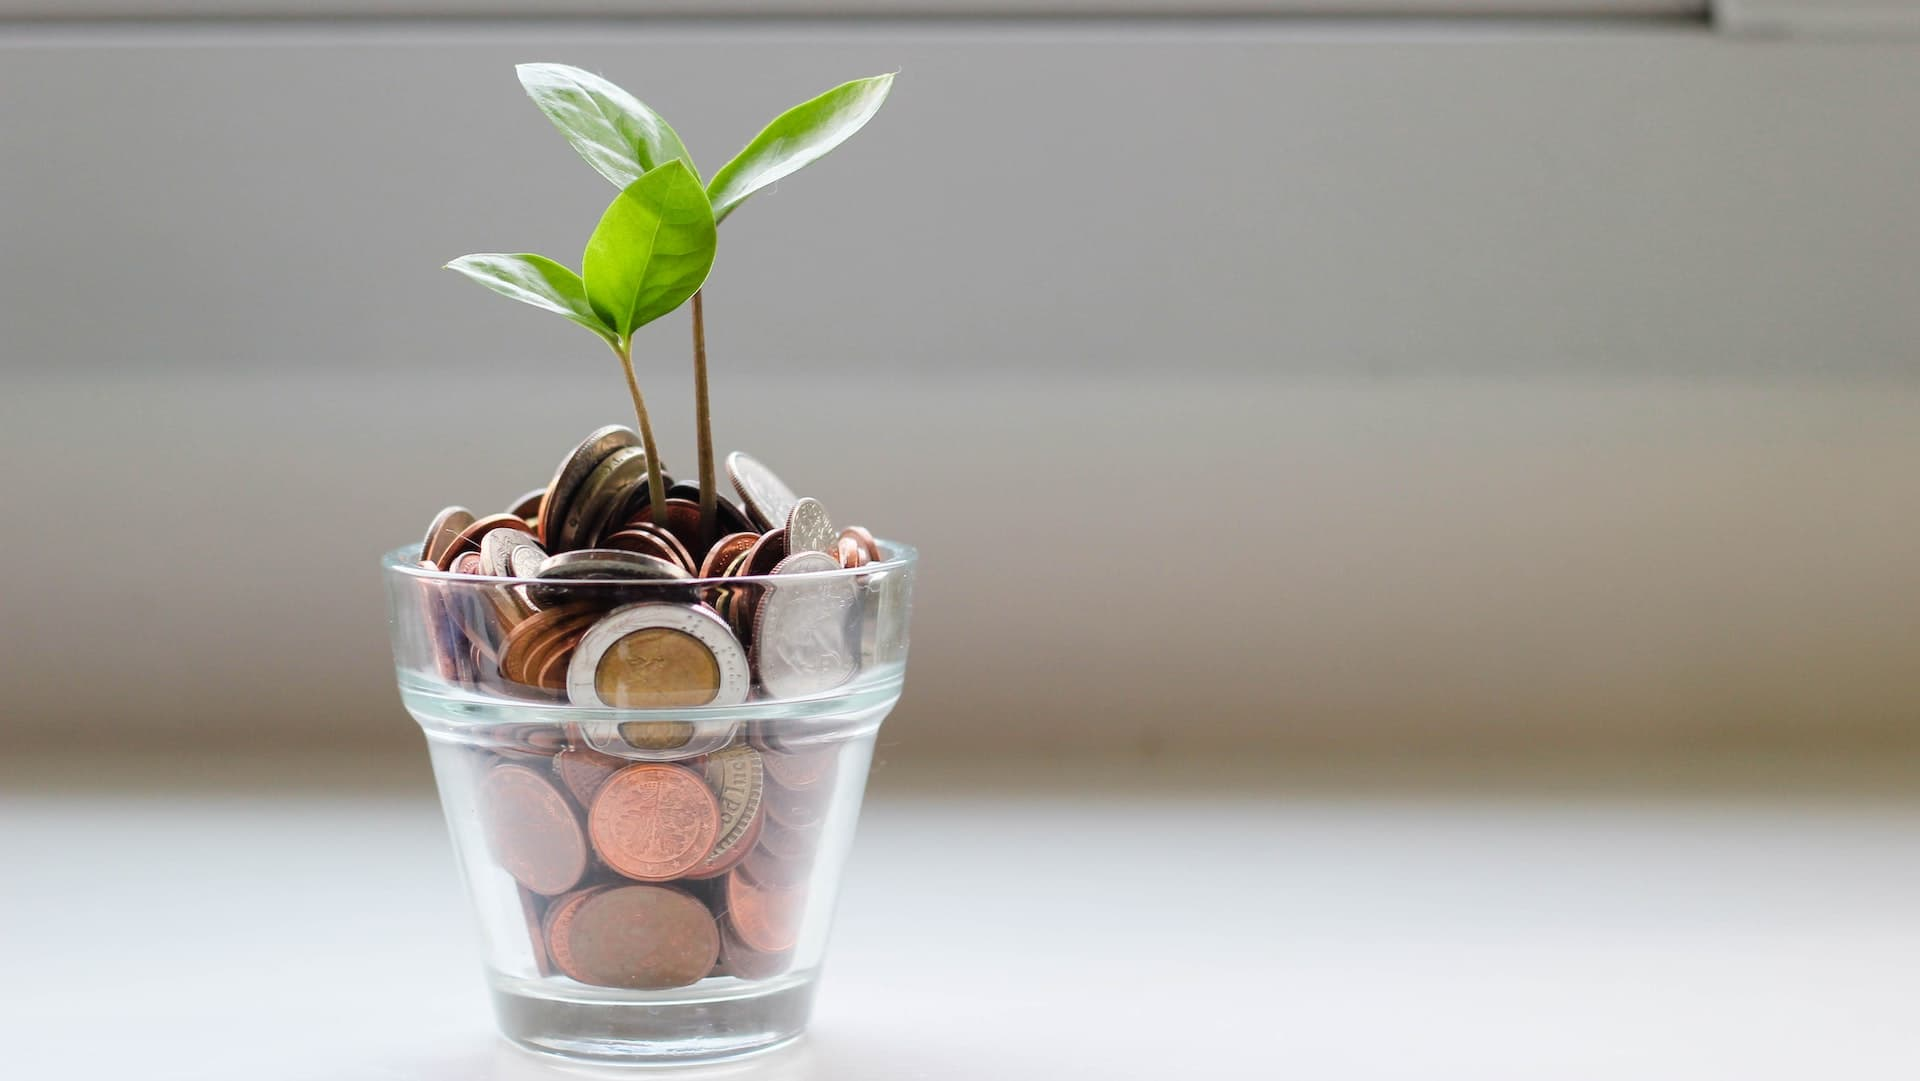 5 Tips On How To Get Started Investing With Very Little Money 8